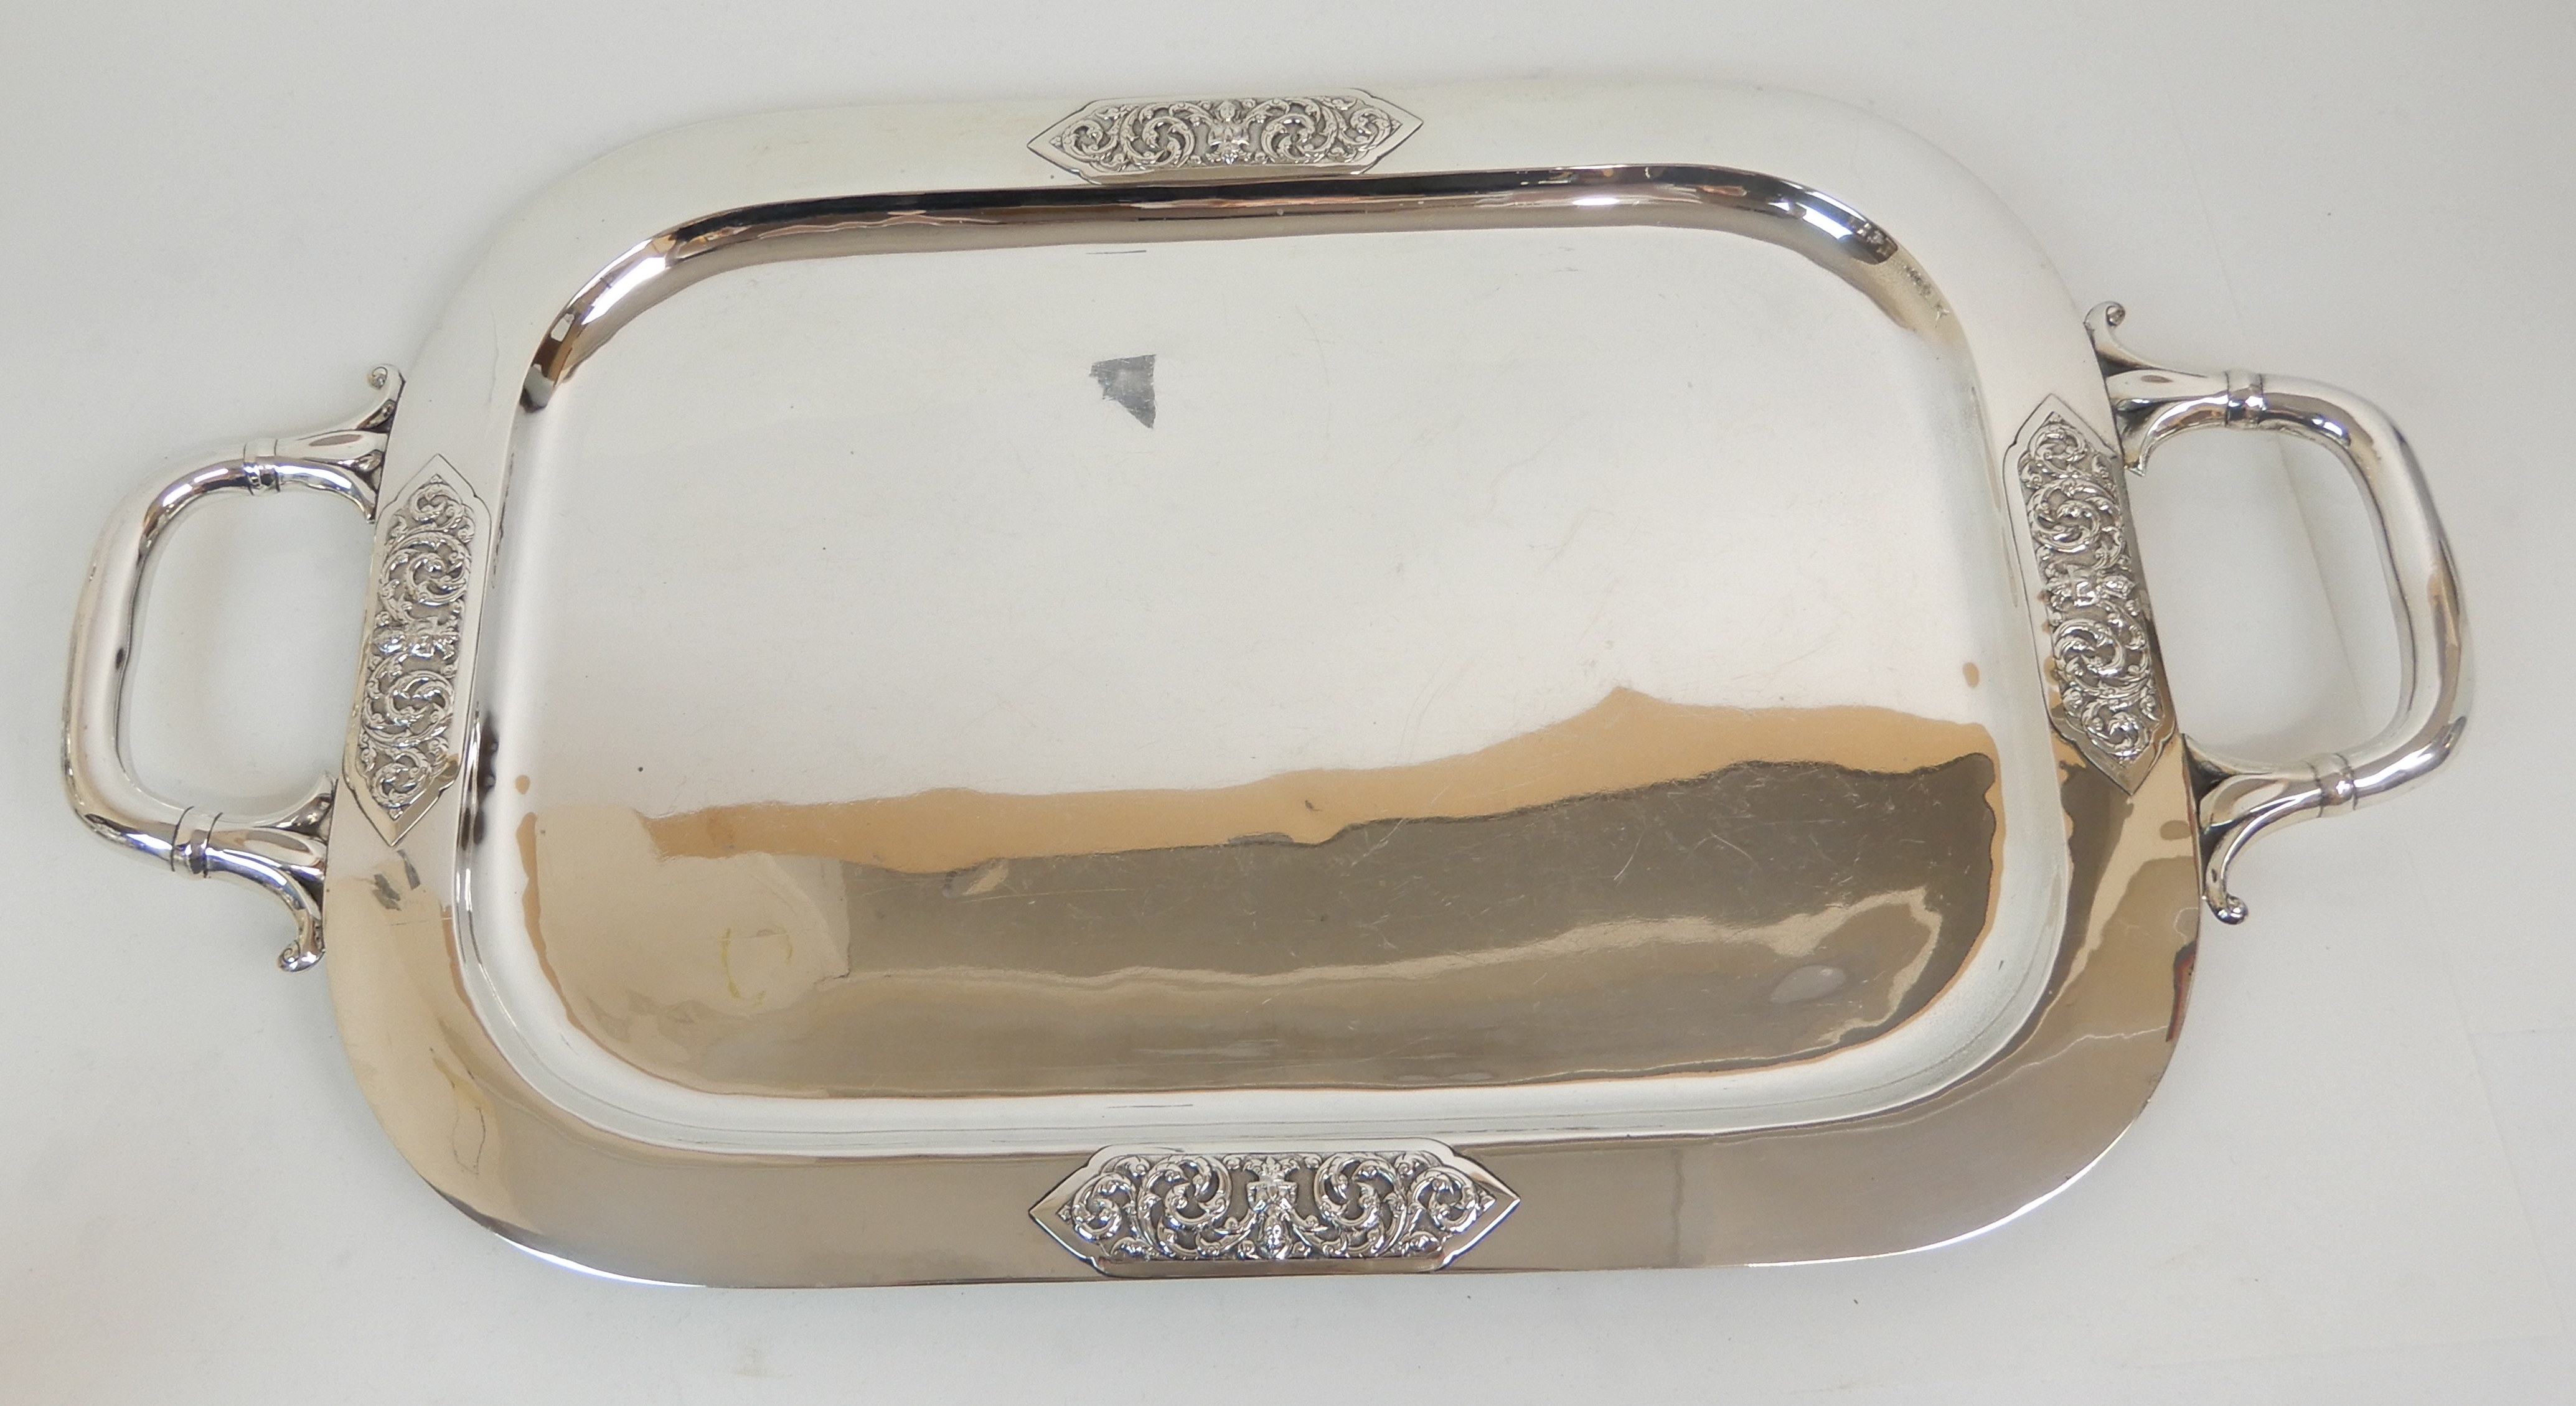 Lot 132 - A FOUR PIECE EASTERN SILVER TEA AND COFFEE SERVICE marked Thailand sterling, circa 1920, of tapering